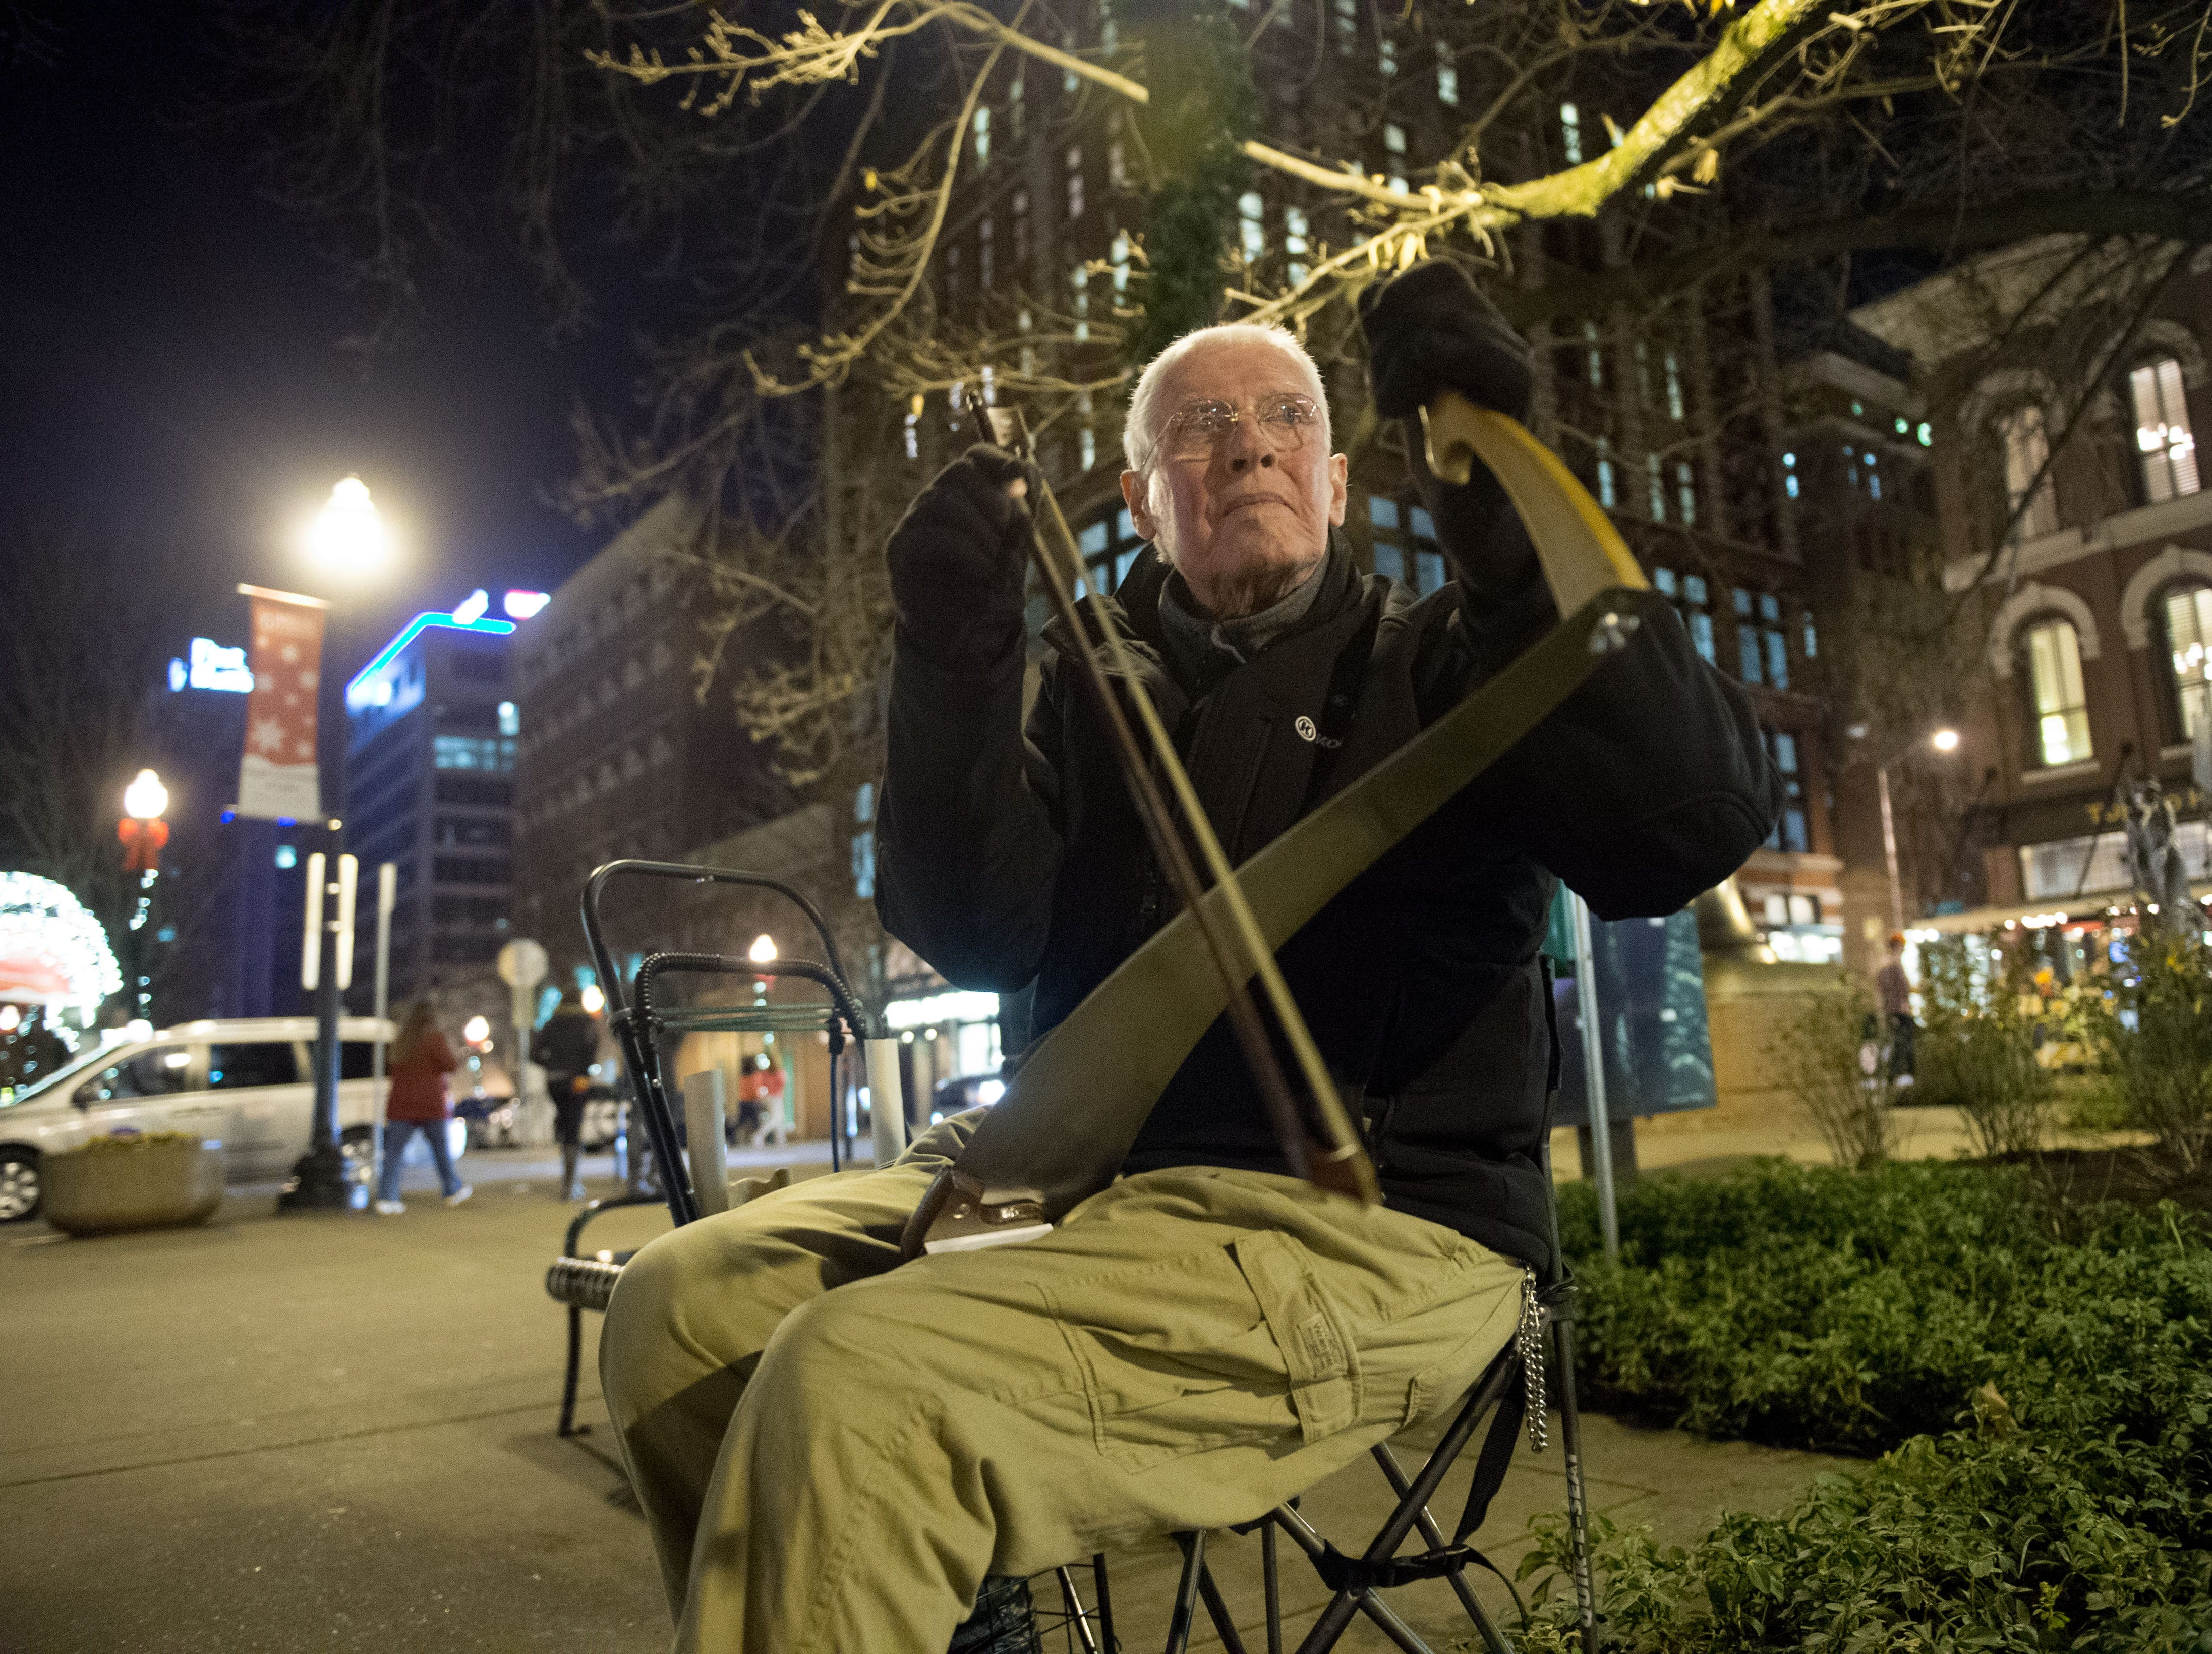 Bob Maddox plays a musical saw at Market Square on New Year's Eve on Wednesday, December 31, 2014.